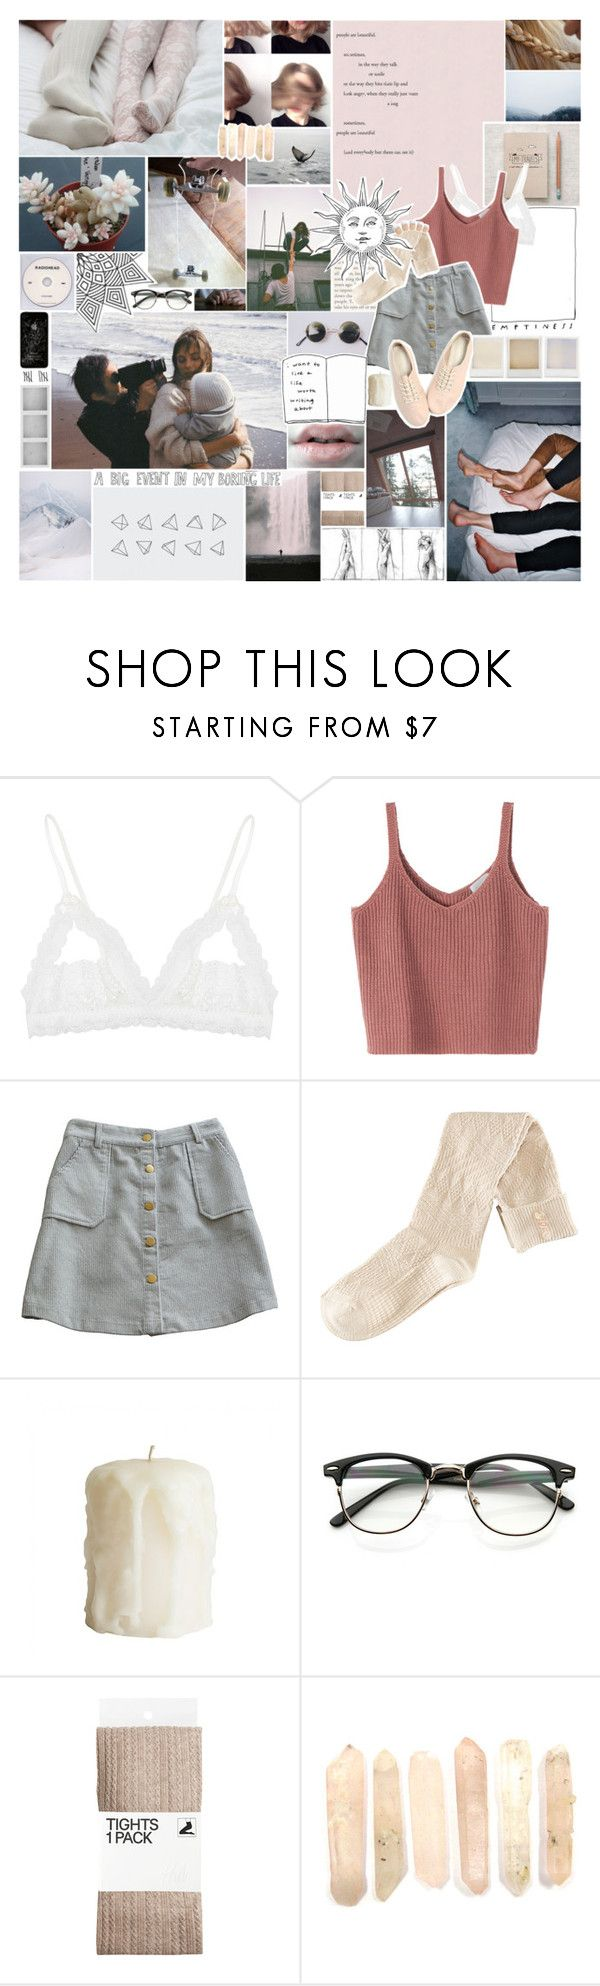 """""""i like it so well that for all i can tell i may never come down again..."""" by mist-on-the-meadow ❤ liked on Polyvore featuring Hanky Panky, H&M, Evil Twin, Holga and KEEP ME"""